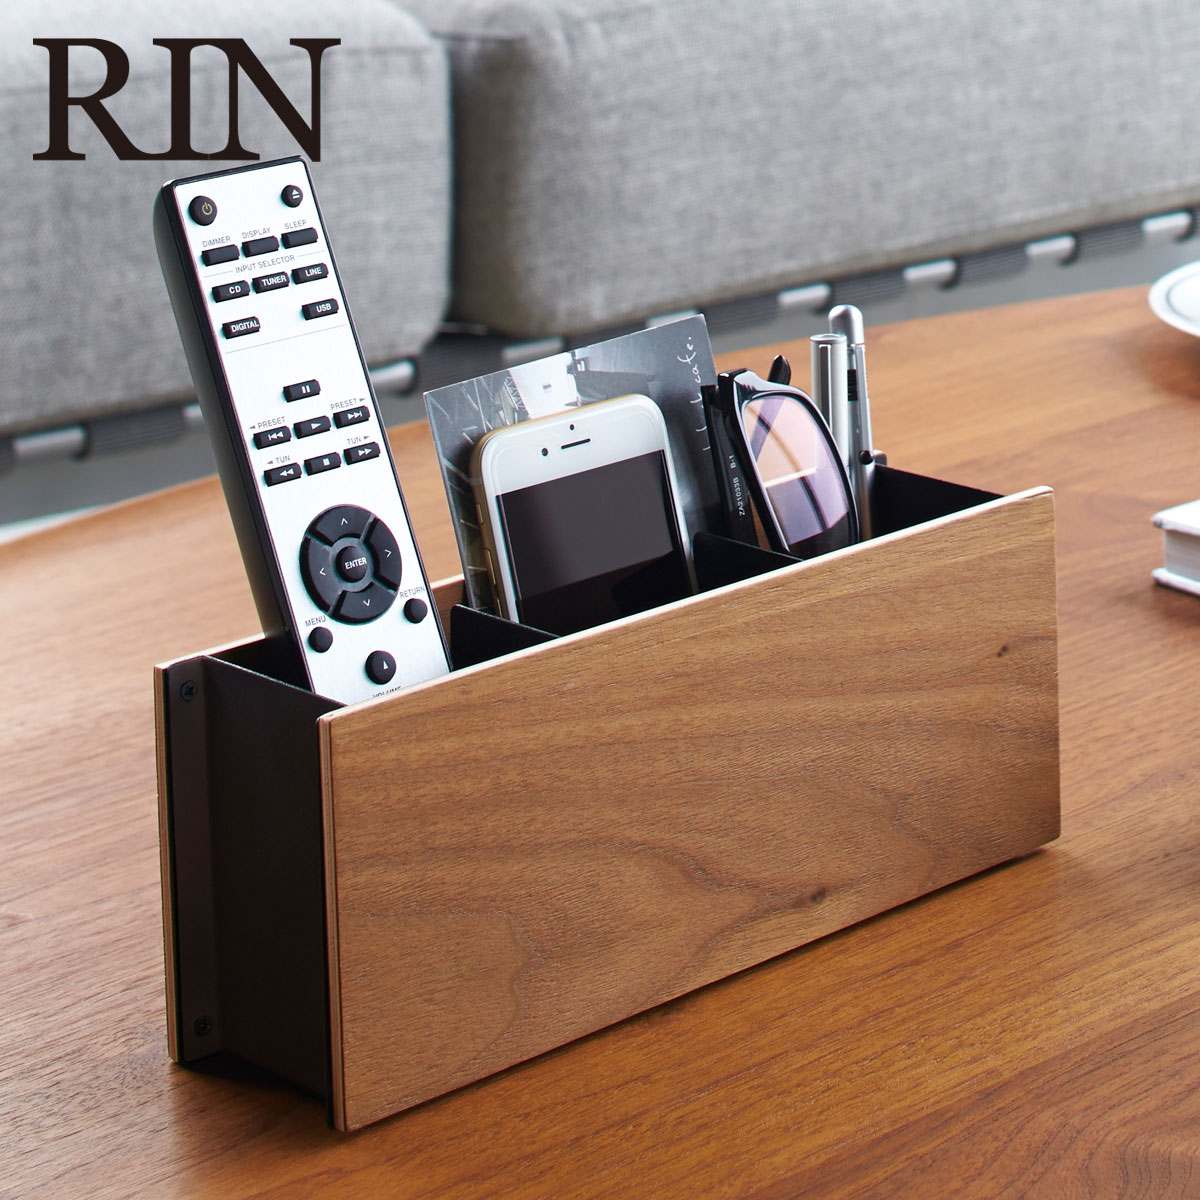 Product Made In Remote Control Rack Fashion Pen Phosphorus Rin Stands Each Tree Pretty Standish